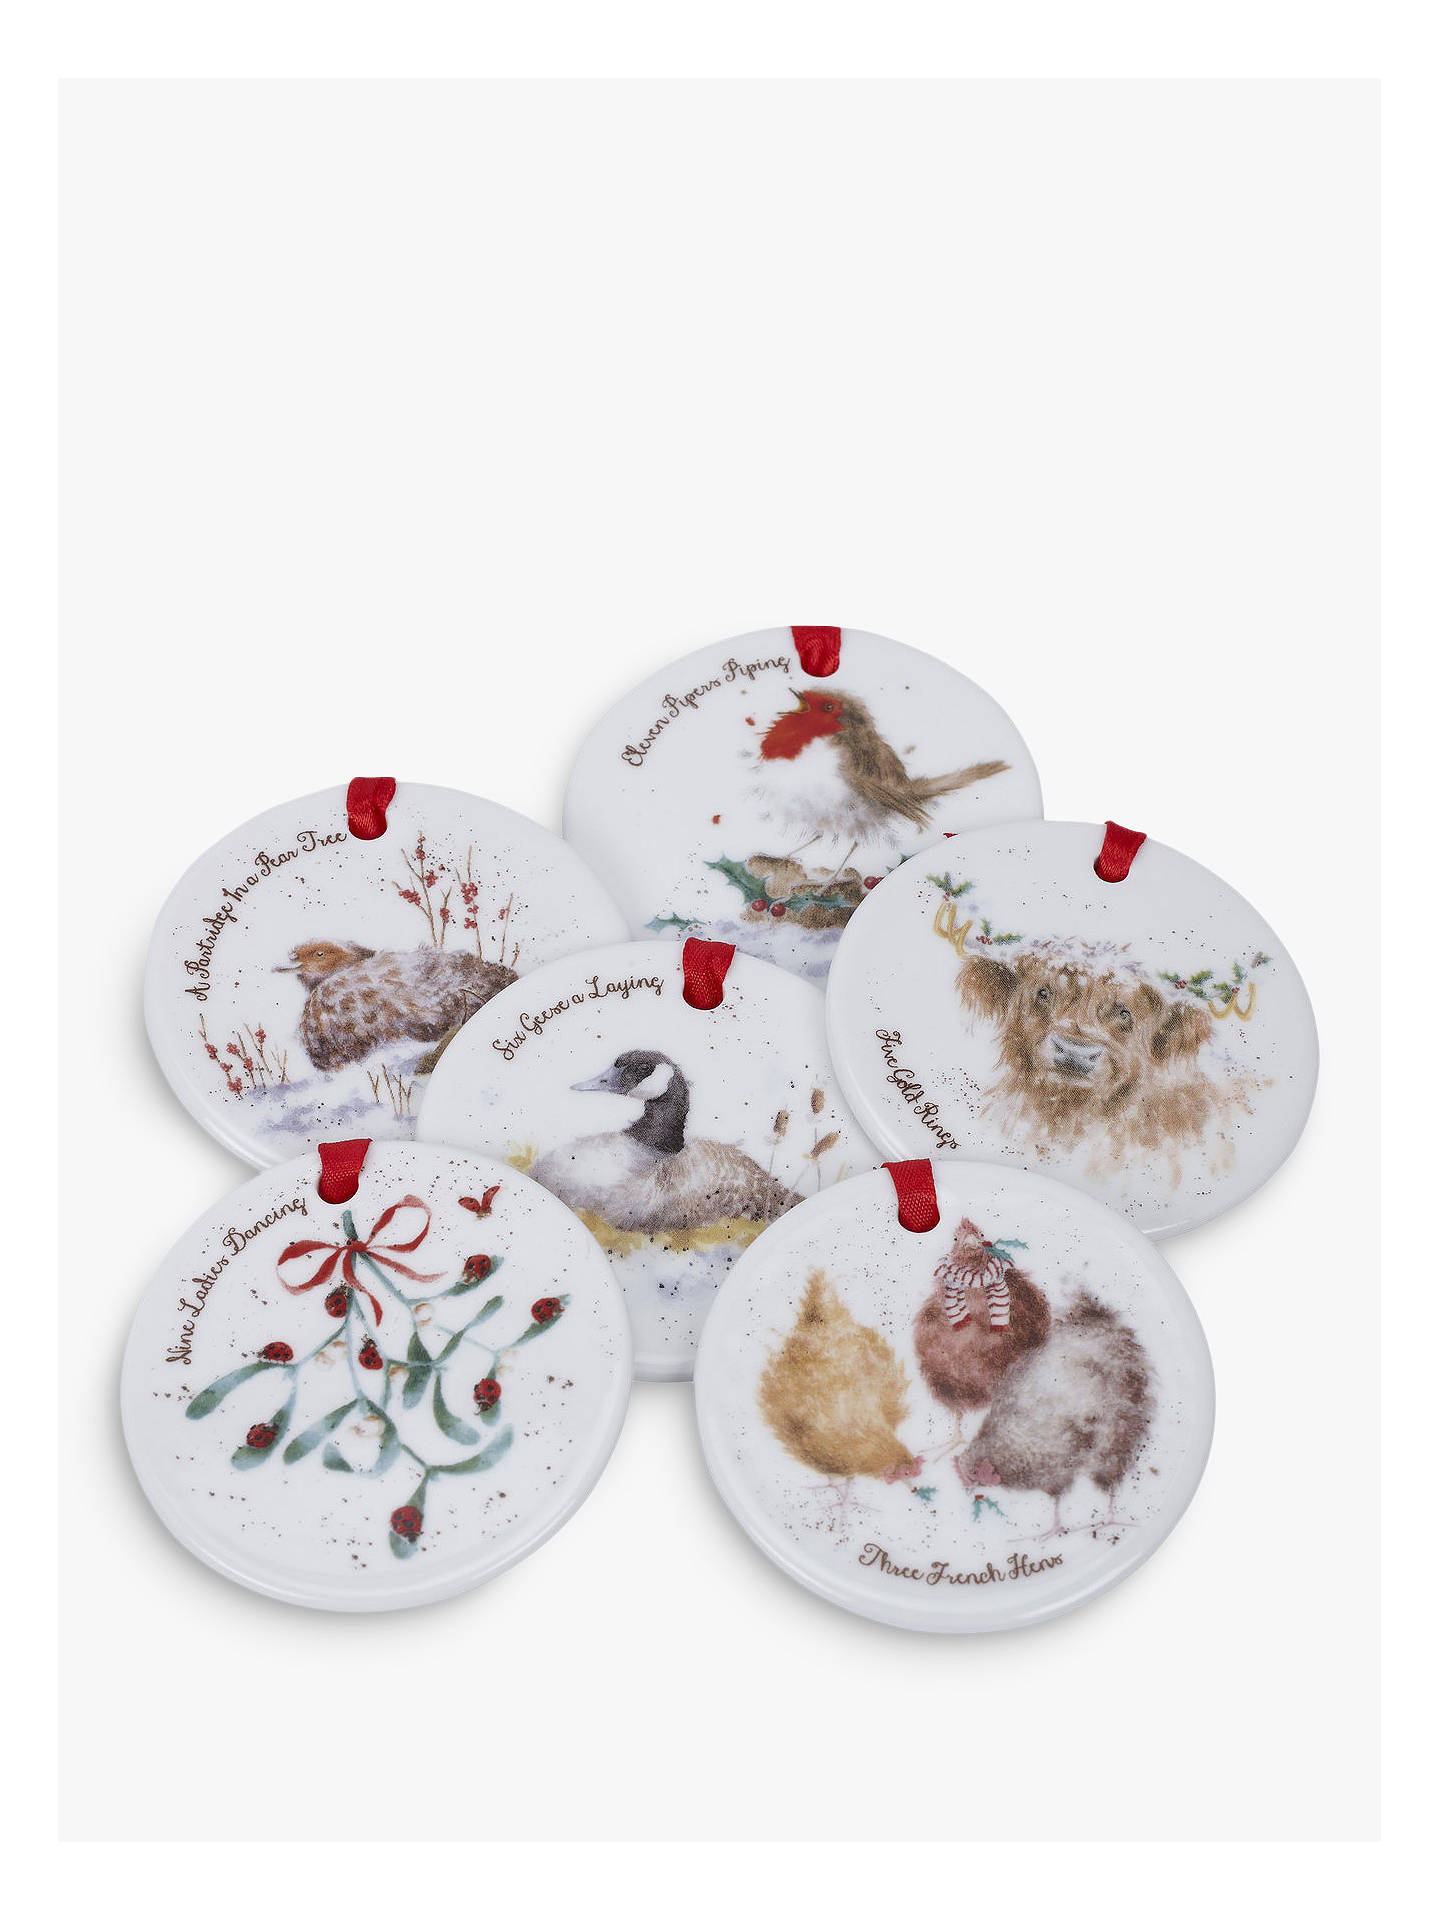 Buy Wrendale Designs 12 Days Of Christmas Tree Baubles, Set of 12, Assorted Online at johnlewis.com